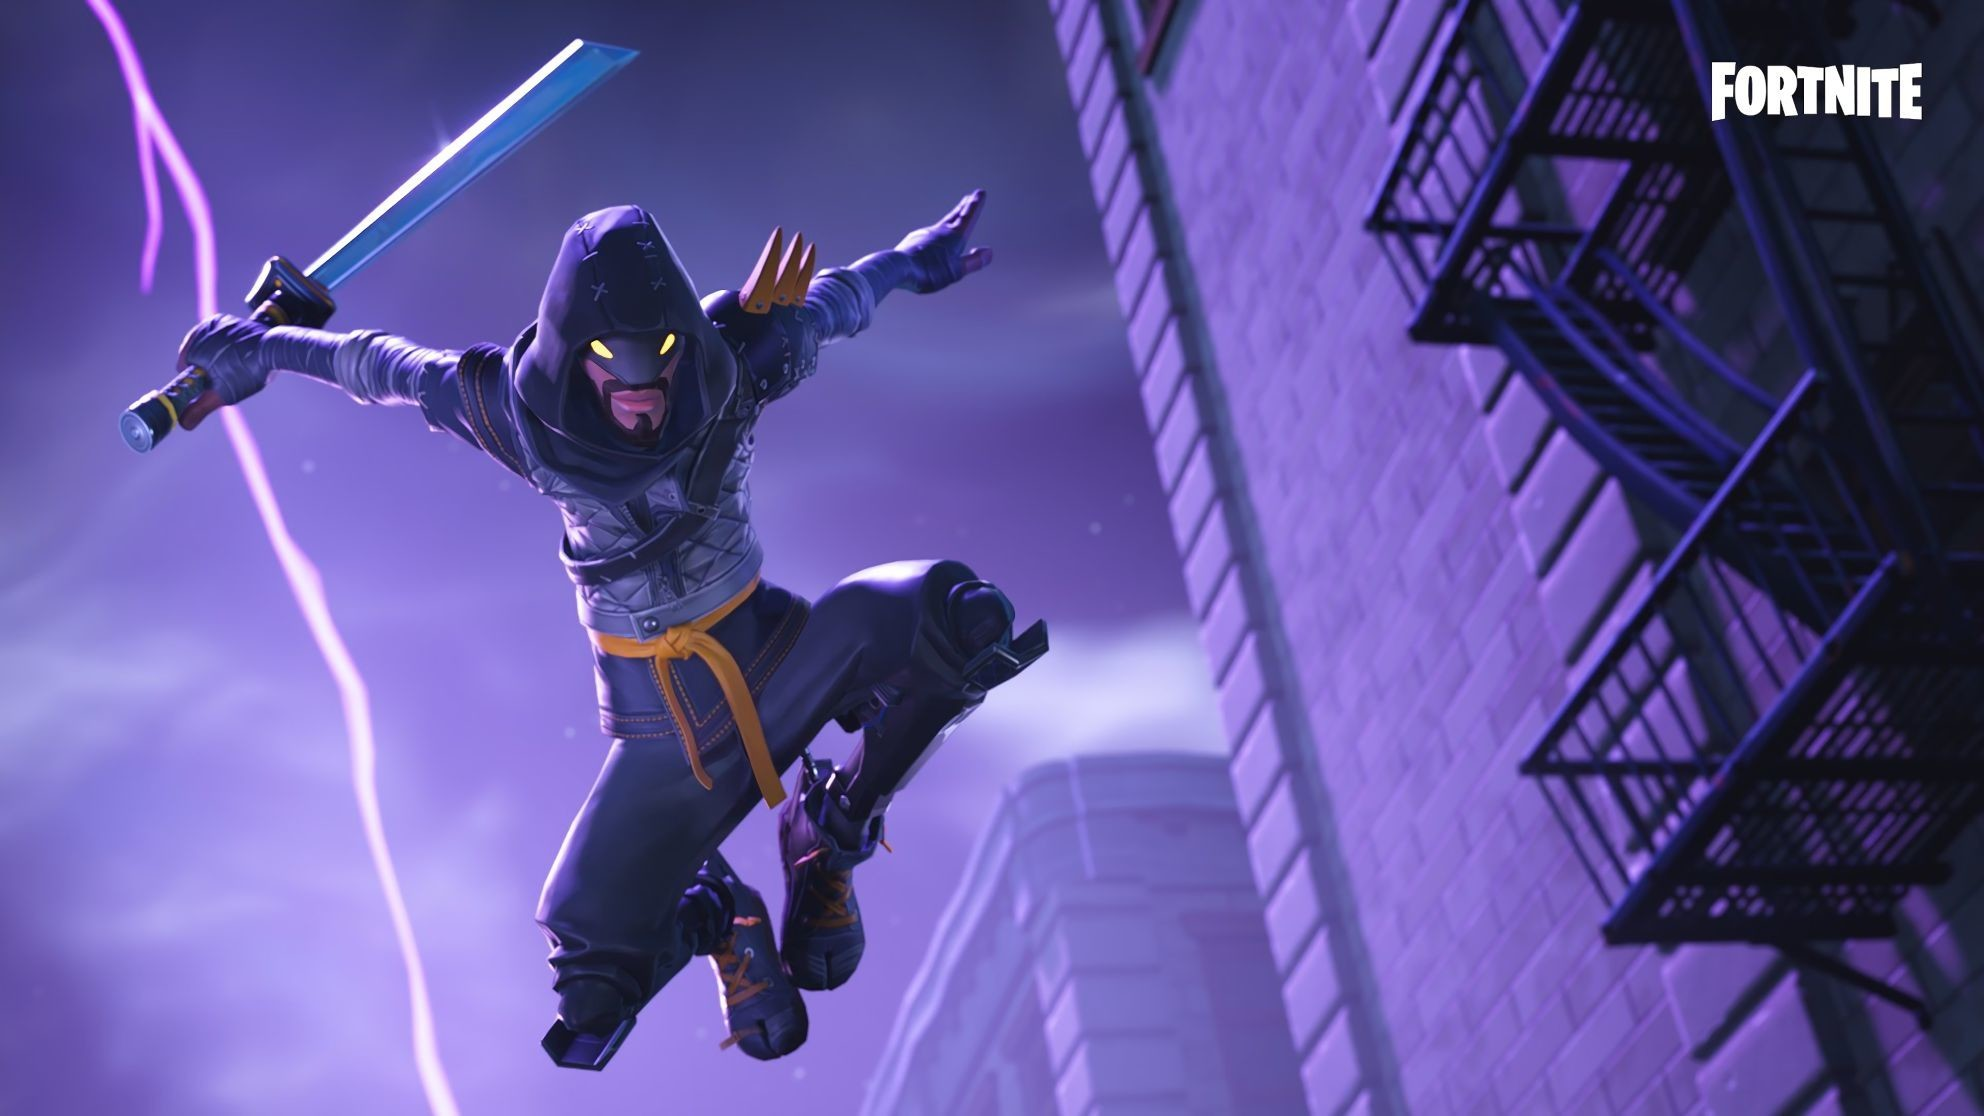 Fortnite 6.10 is live with Disco Domination mode